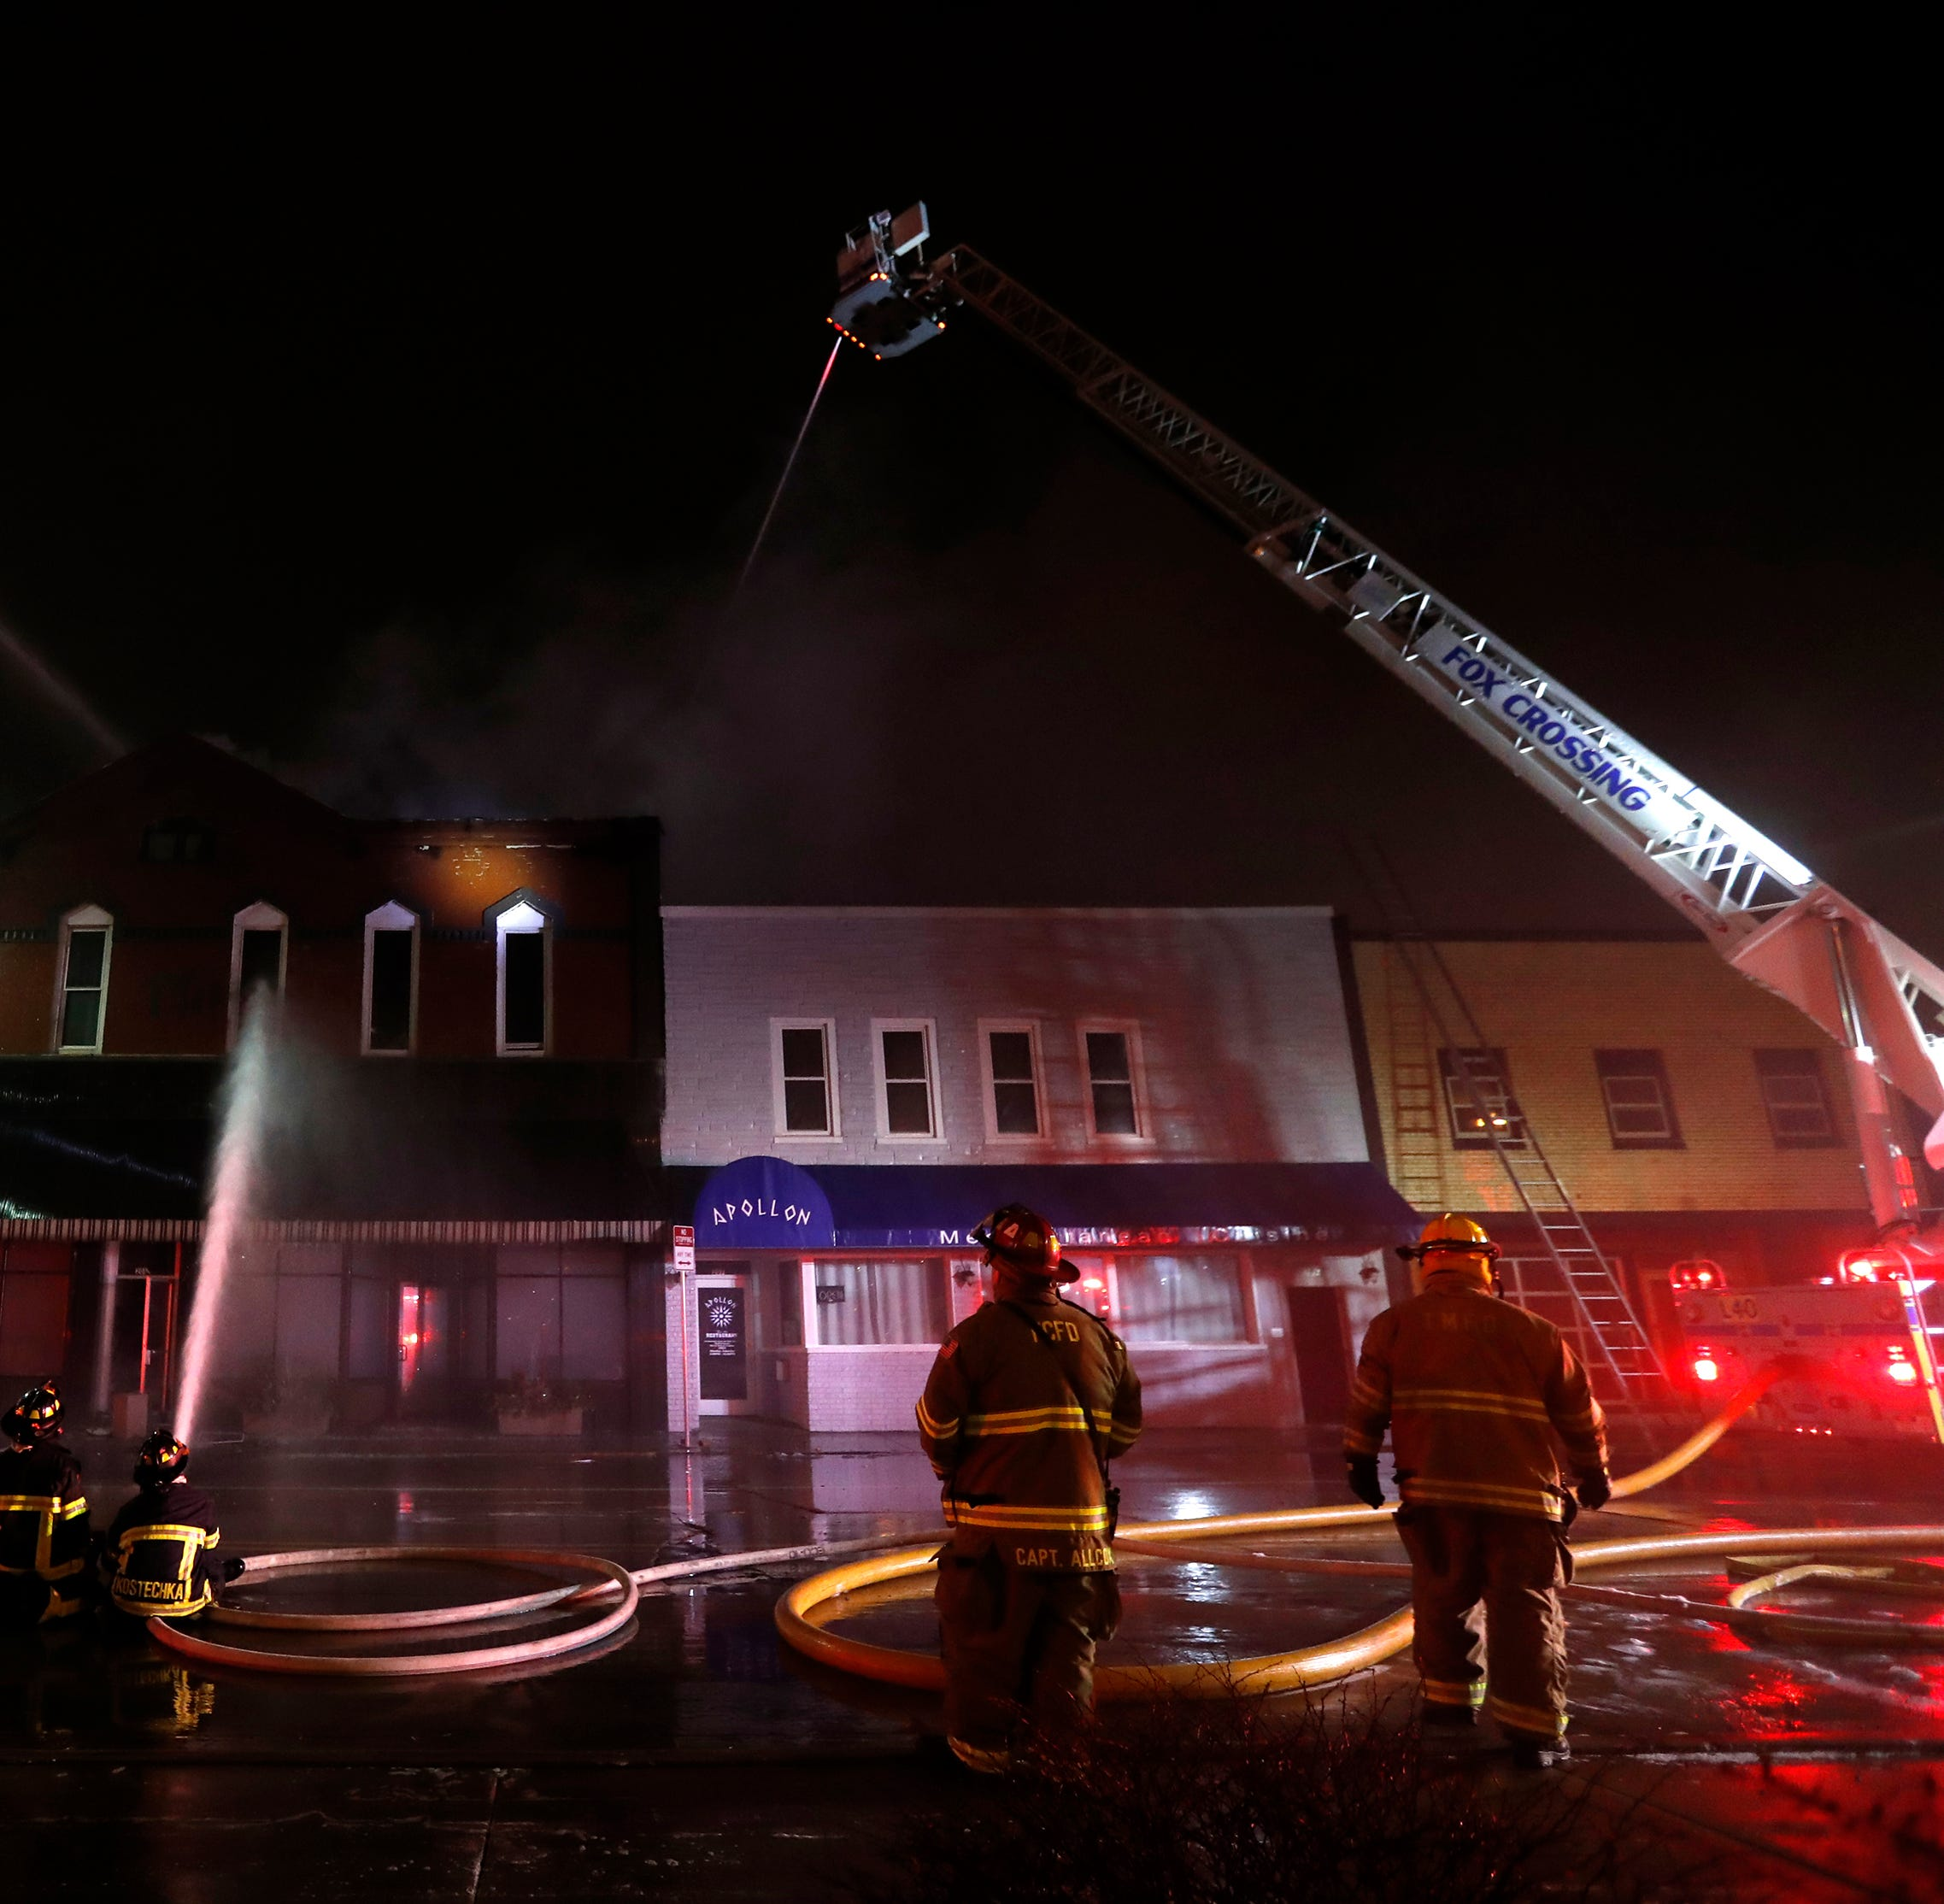 Co-owner of Author's Kitchen + Bar devastated after early morning fire destroys restaurant